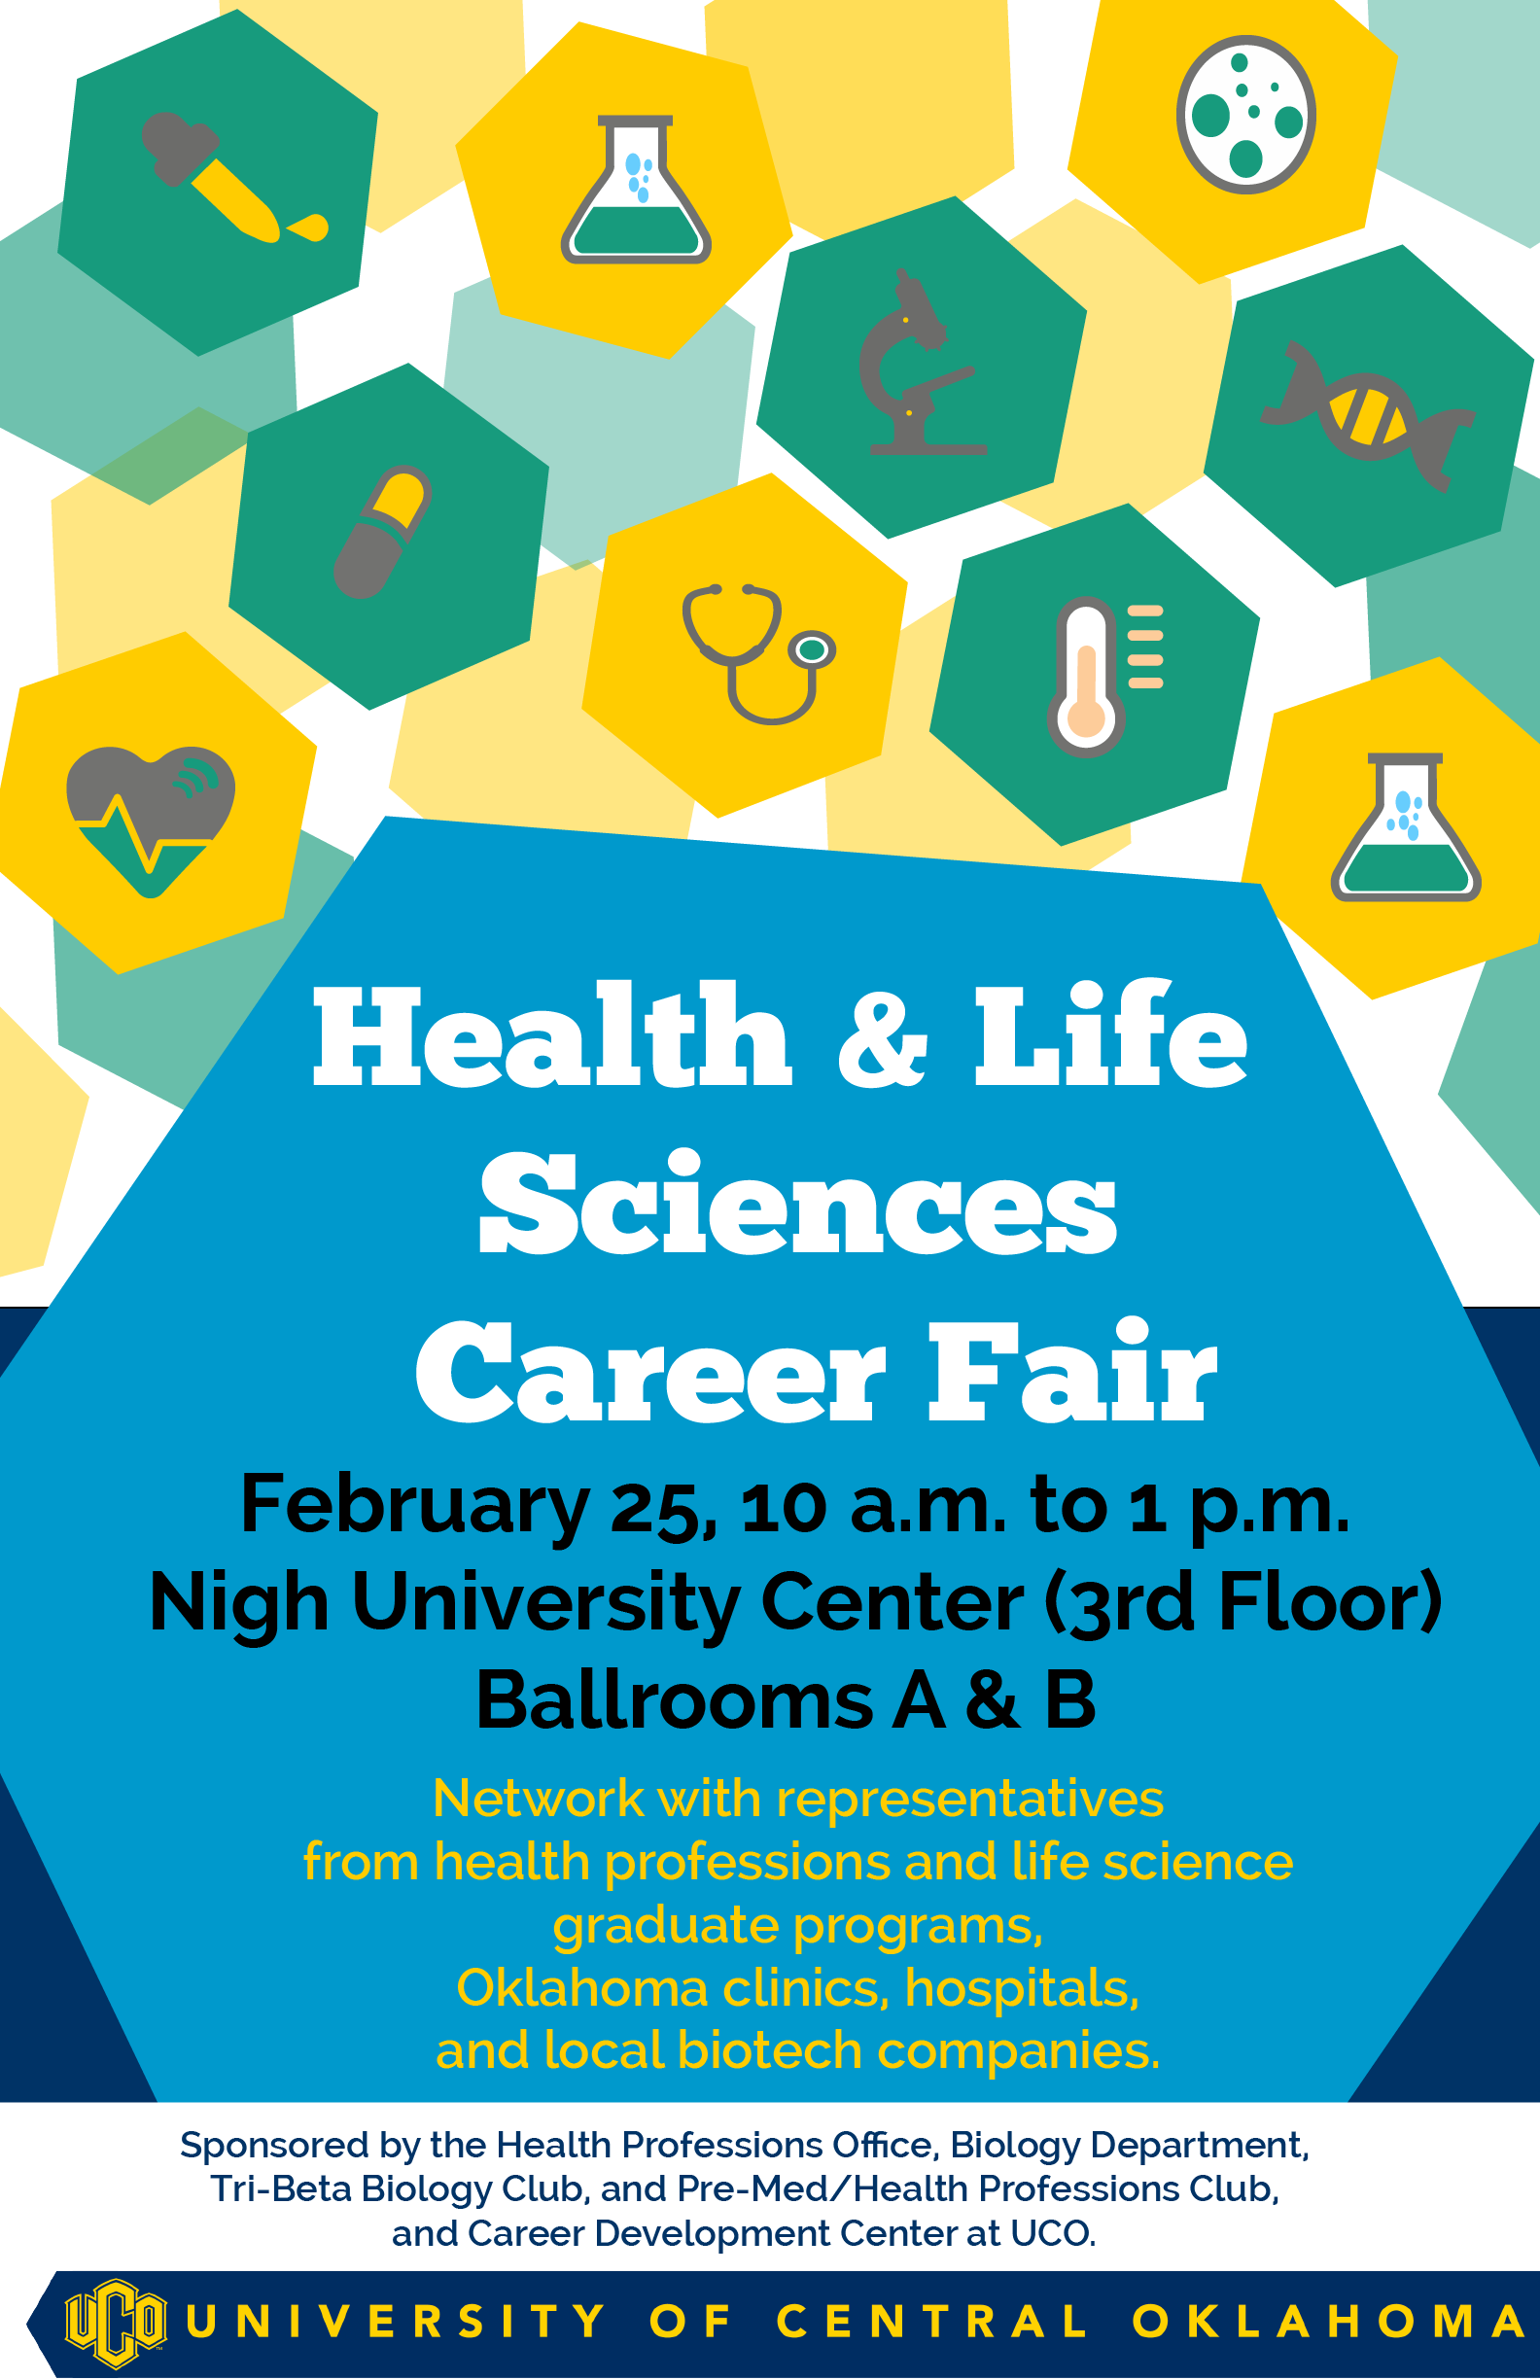 Health and Life Sciences Career Fair taking place on February 25th, from 10 AM to 1 PM in the Nigh University Center at UCO